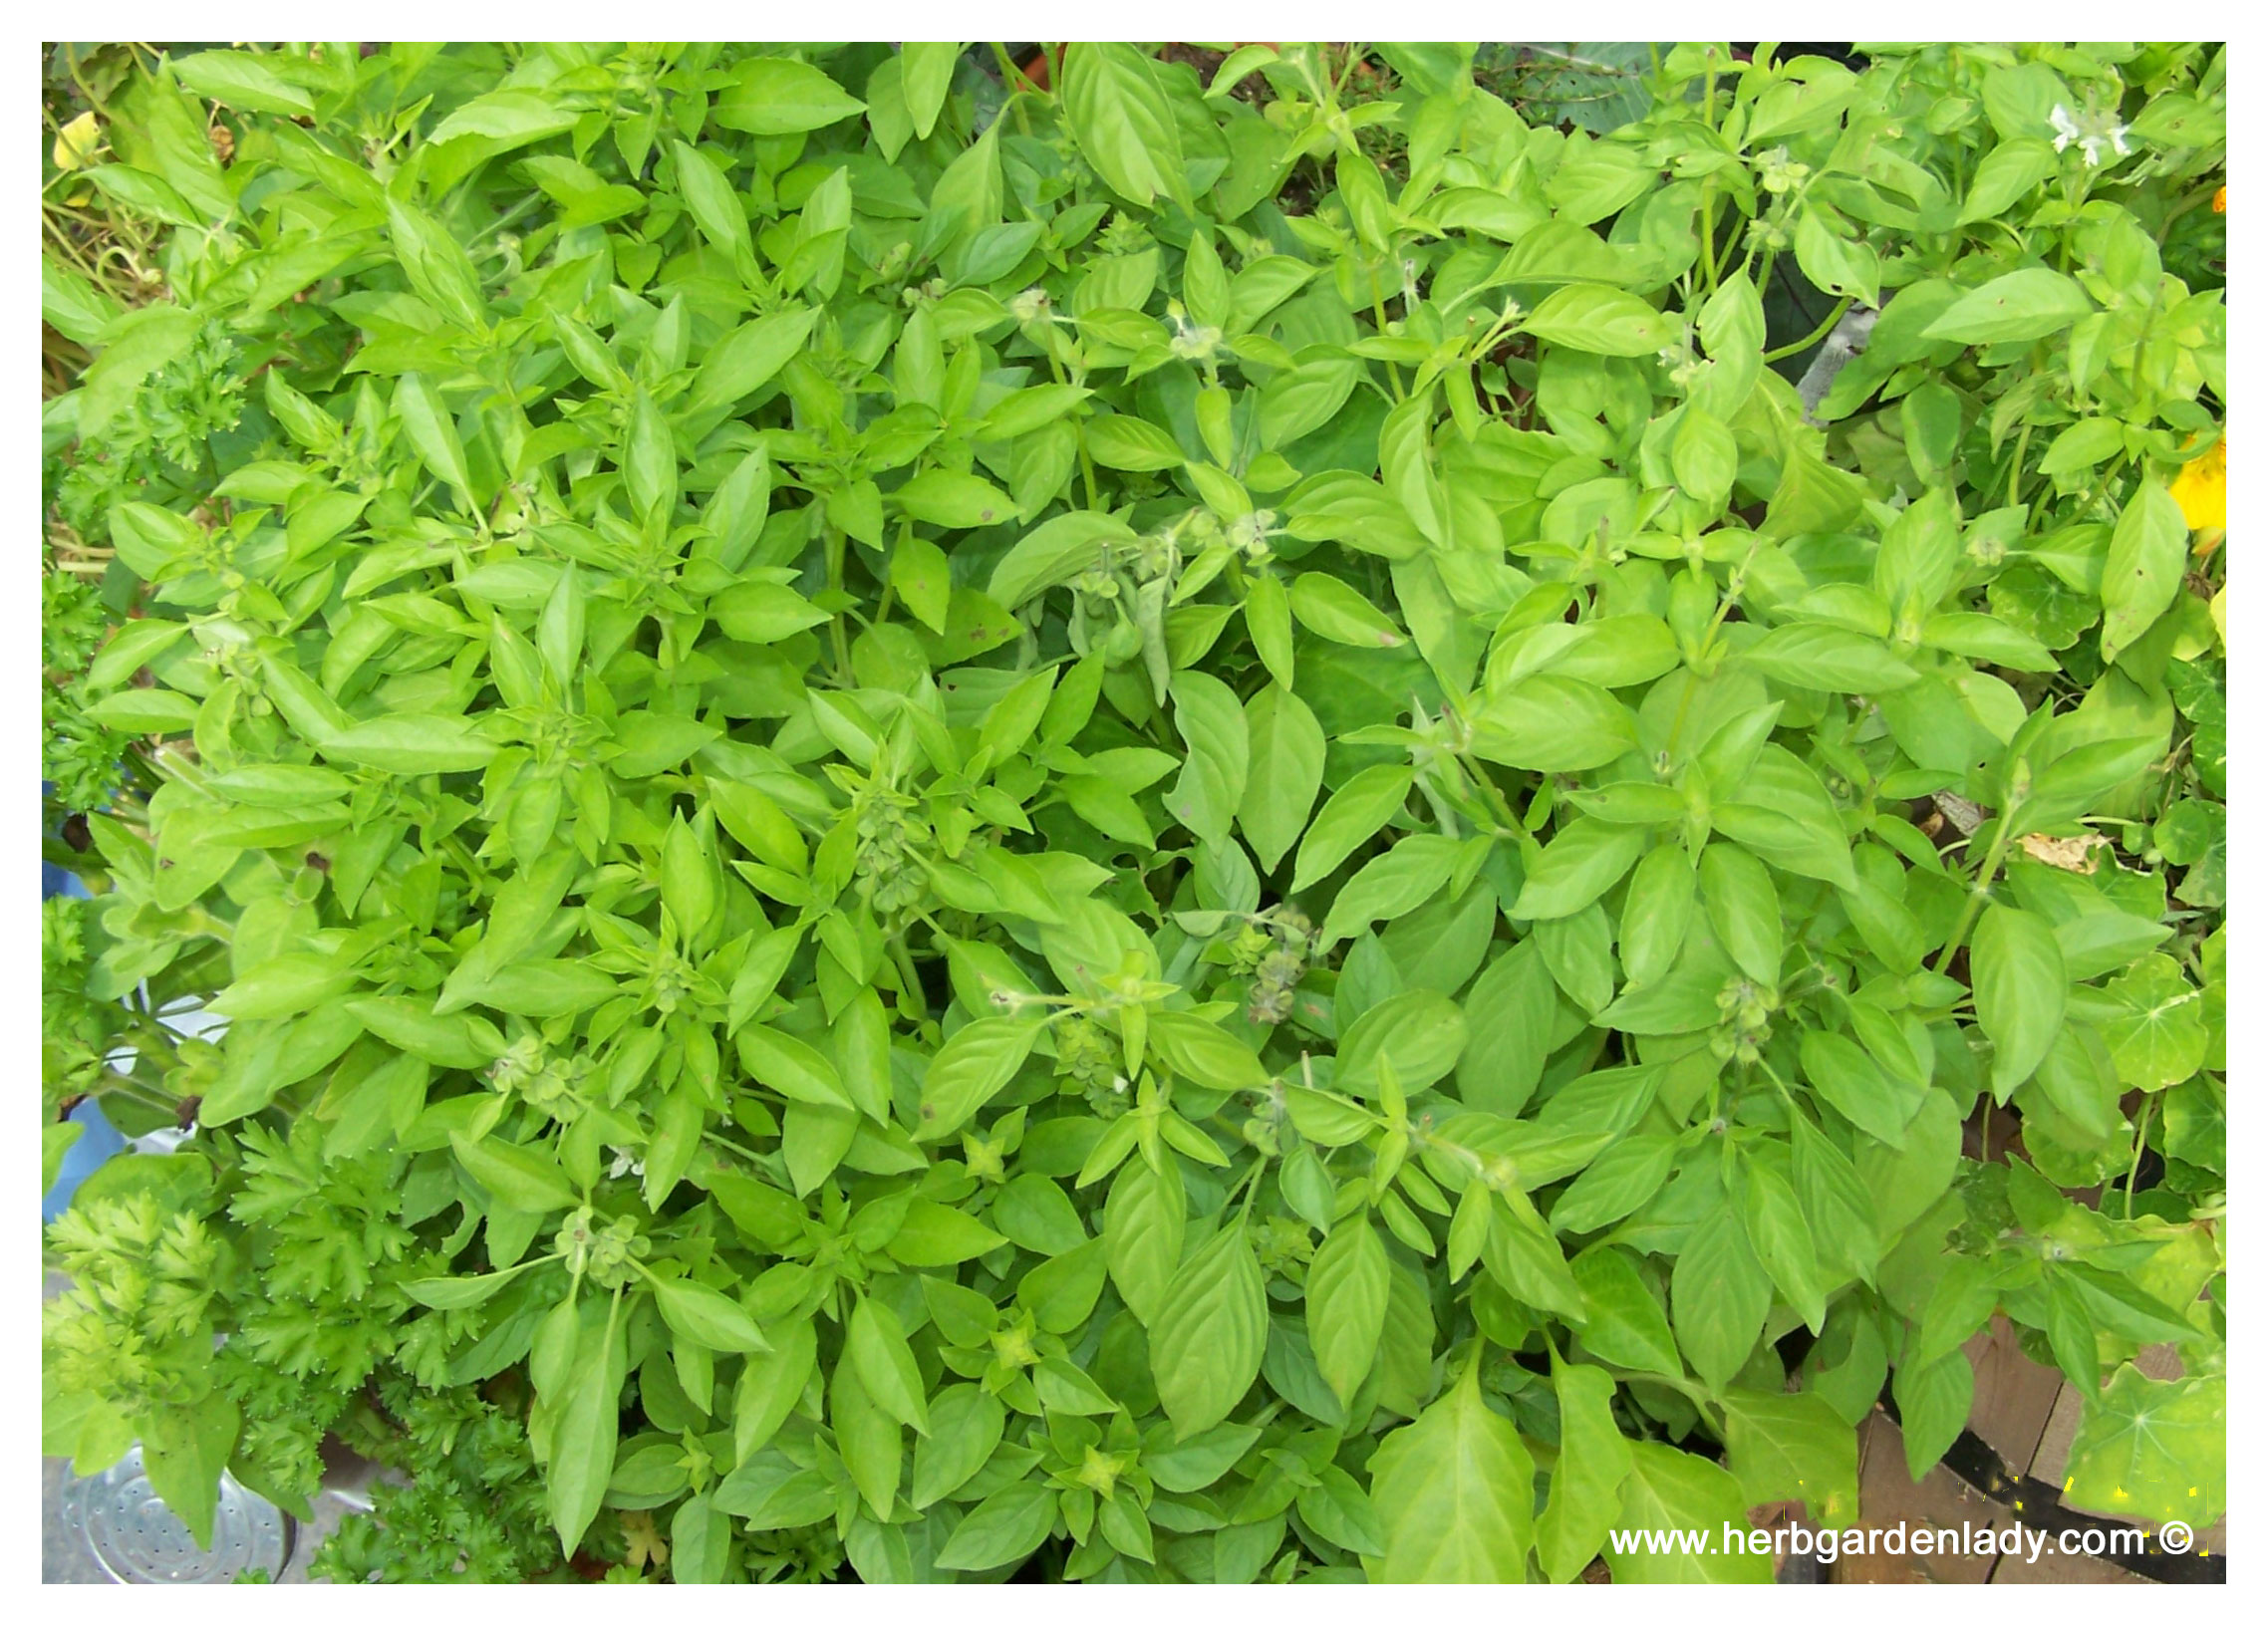 The Basil Herb Is A Culinary Delight To Grow In Your